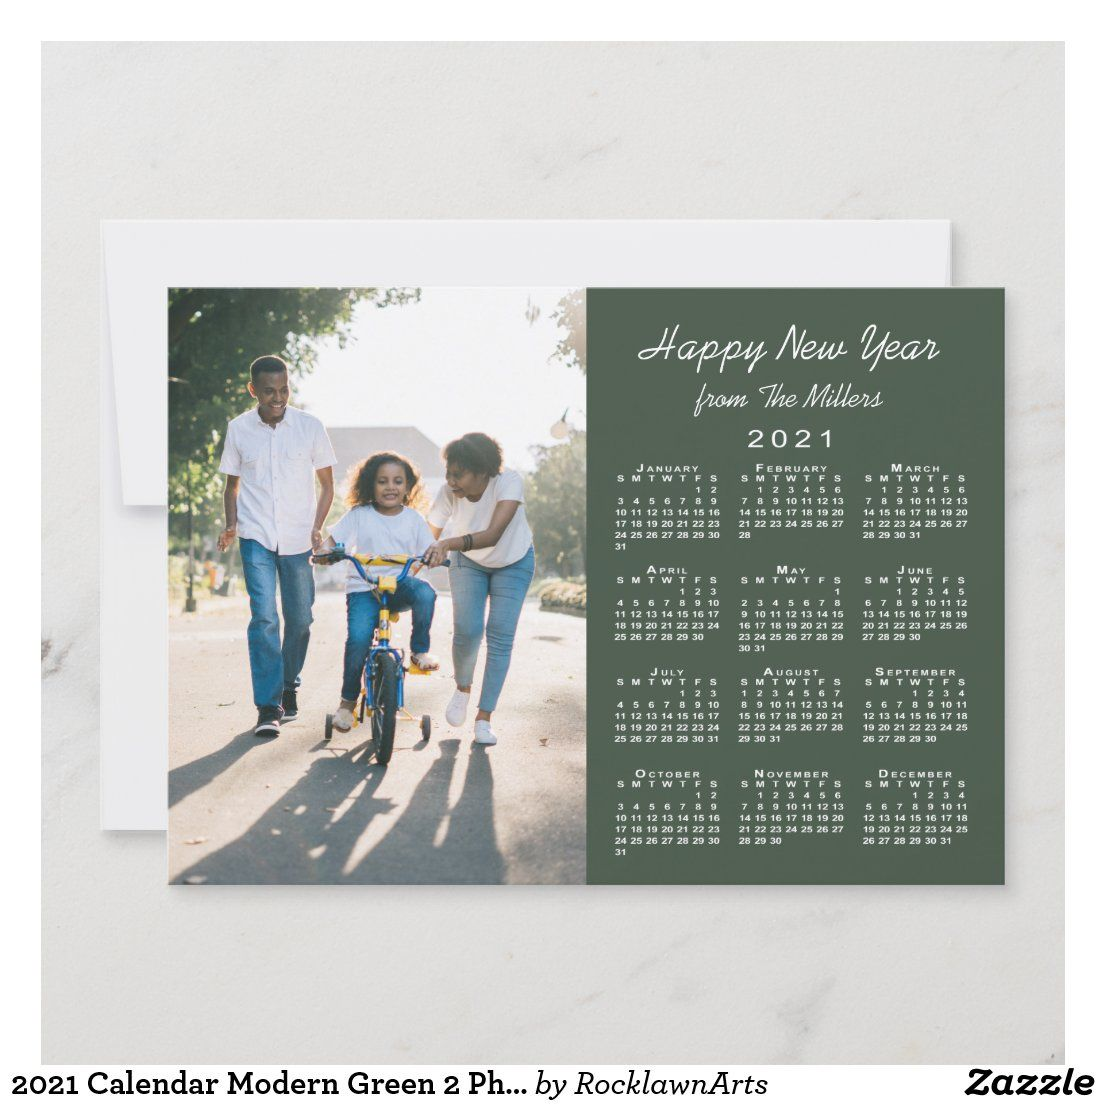 2021 Calendar Modern Green 2 Photo Happy New Year Holiday